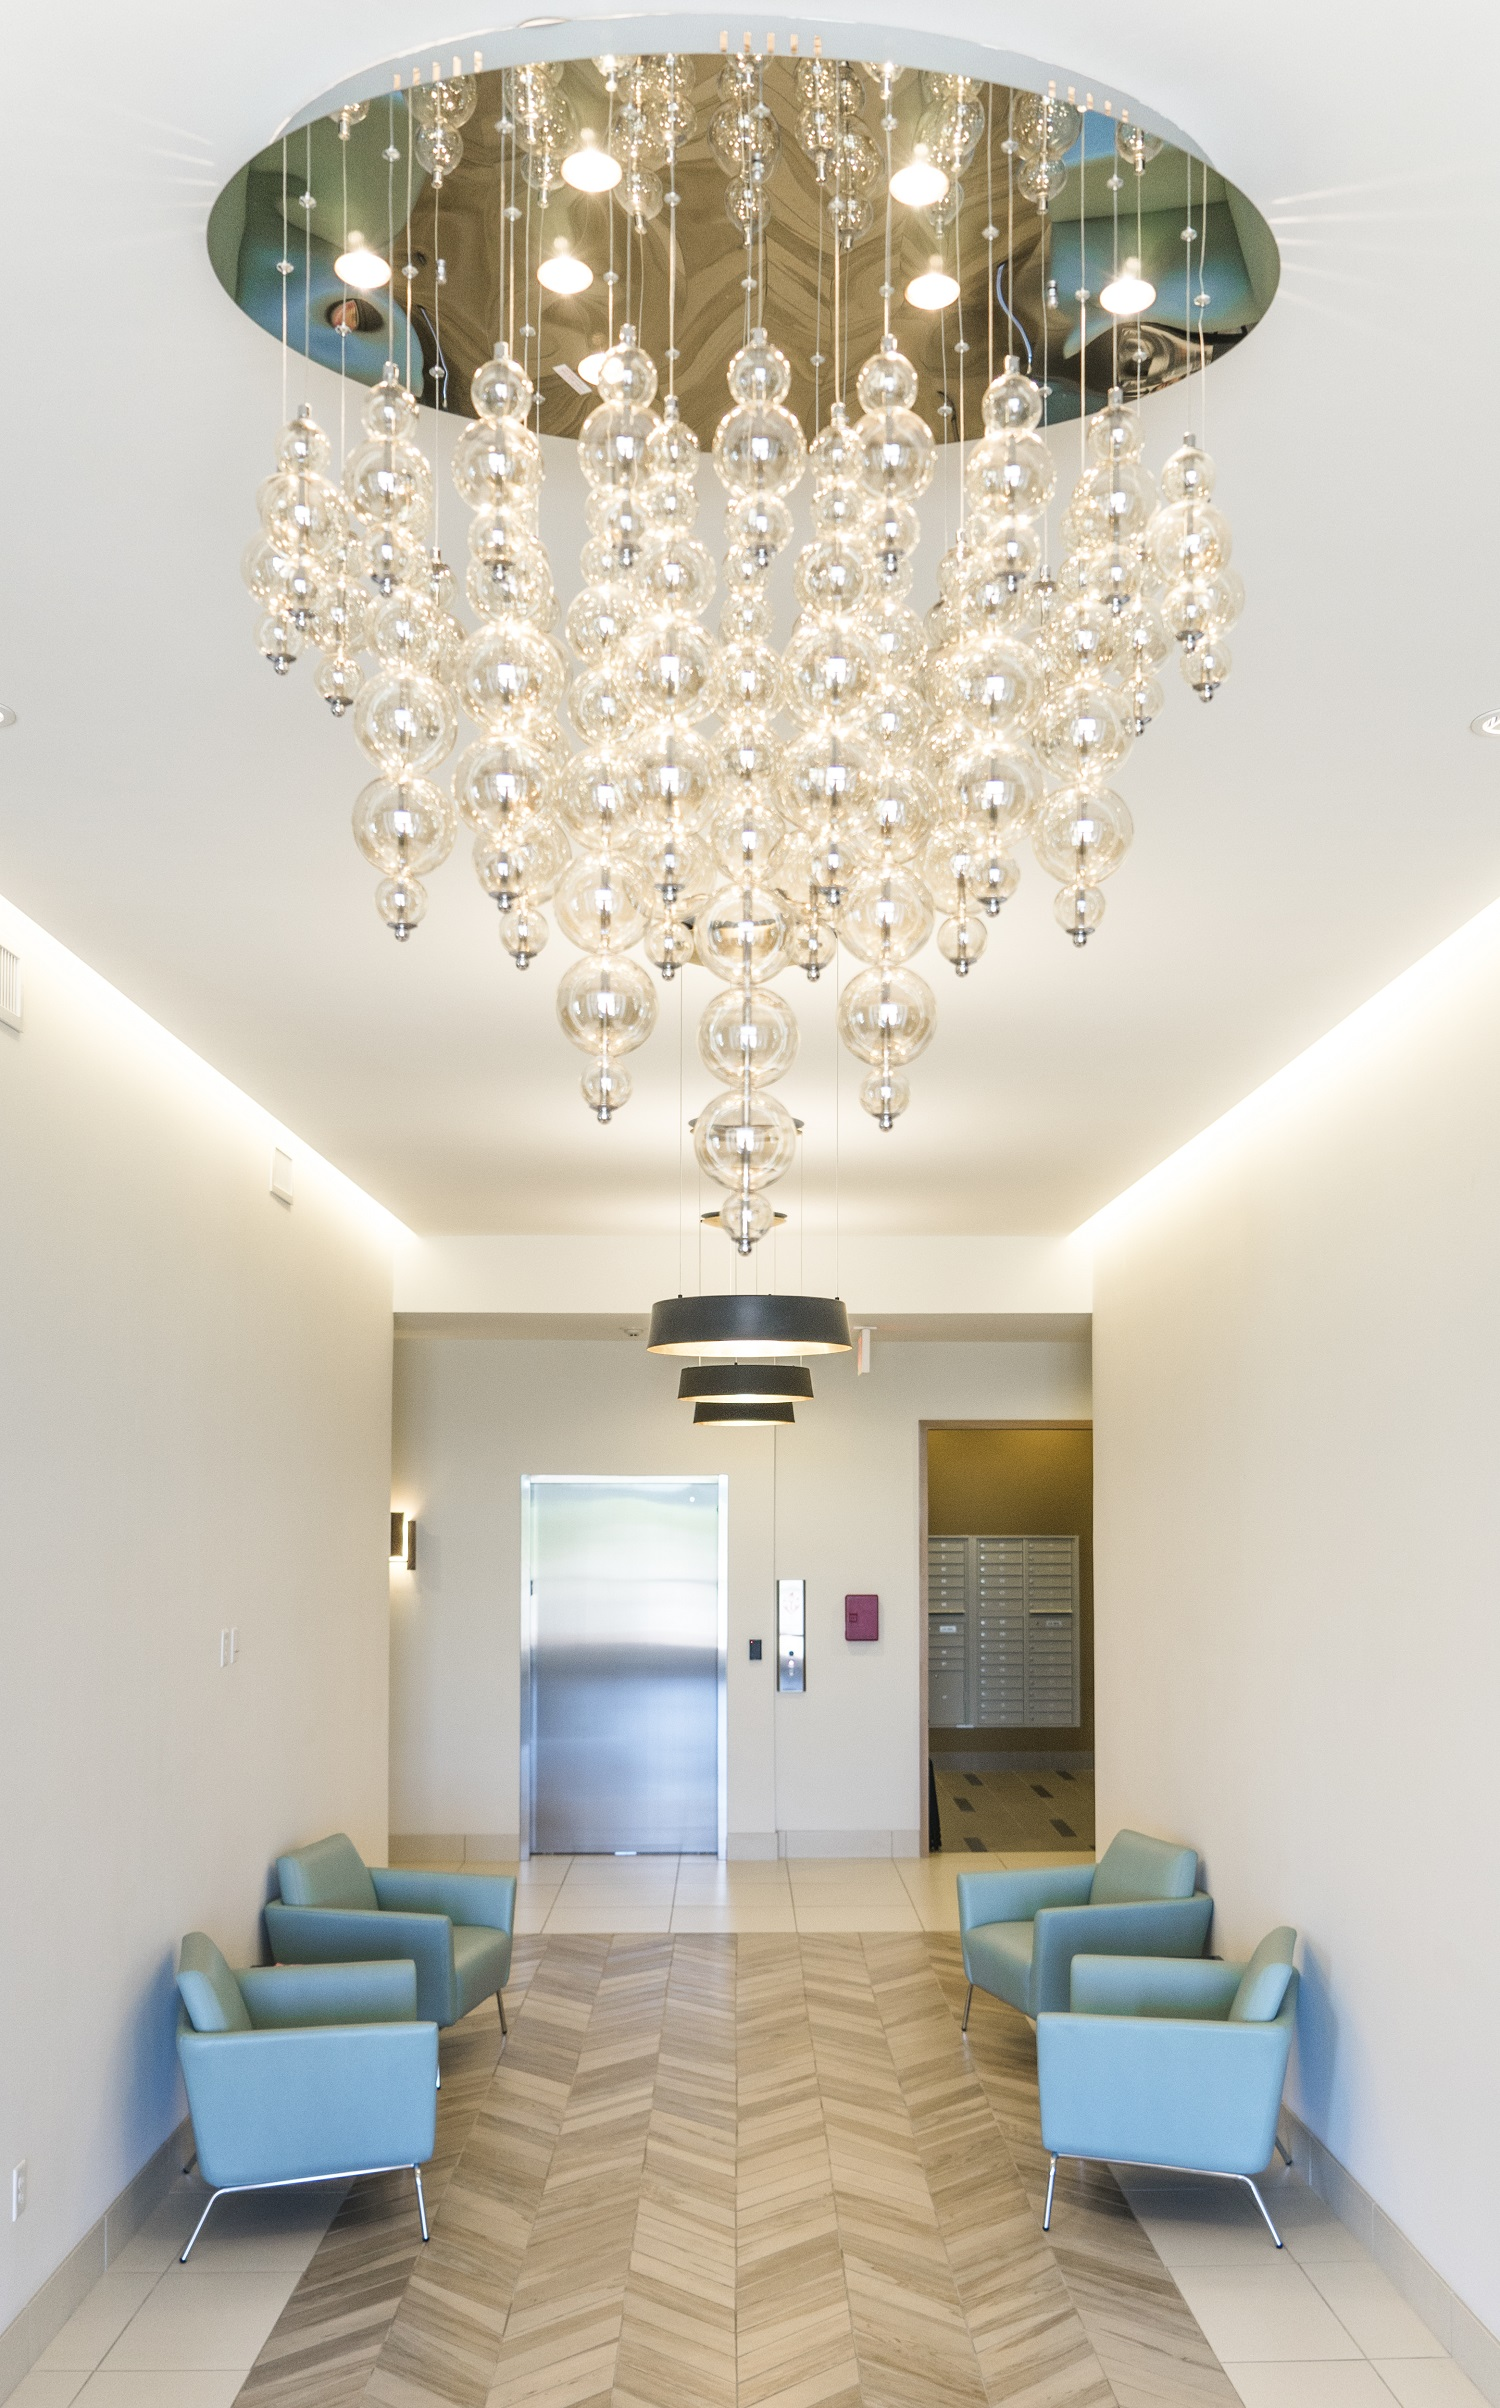 Gorgeous Chandelier and Modern Finishes at Domain City Center Luxury Apartments in Lenexa, Kansas